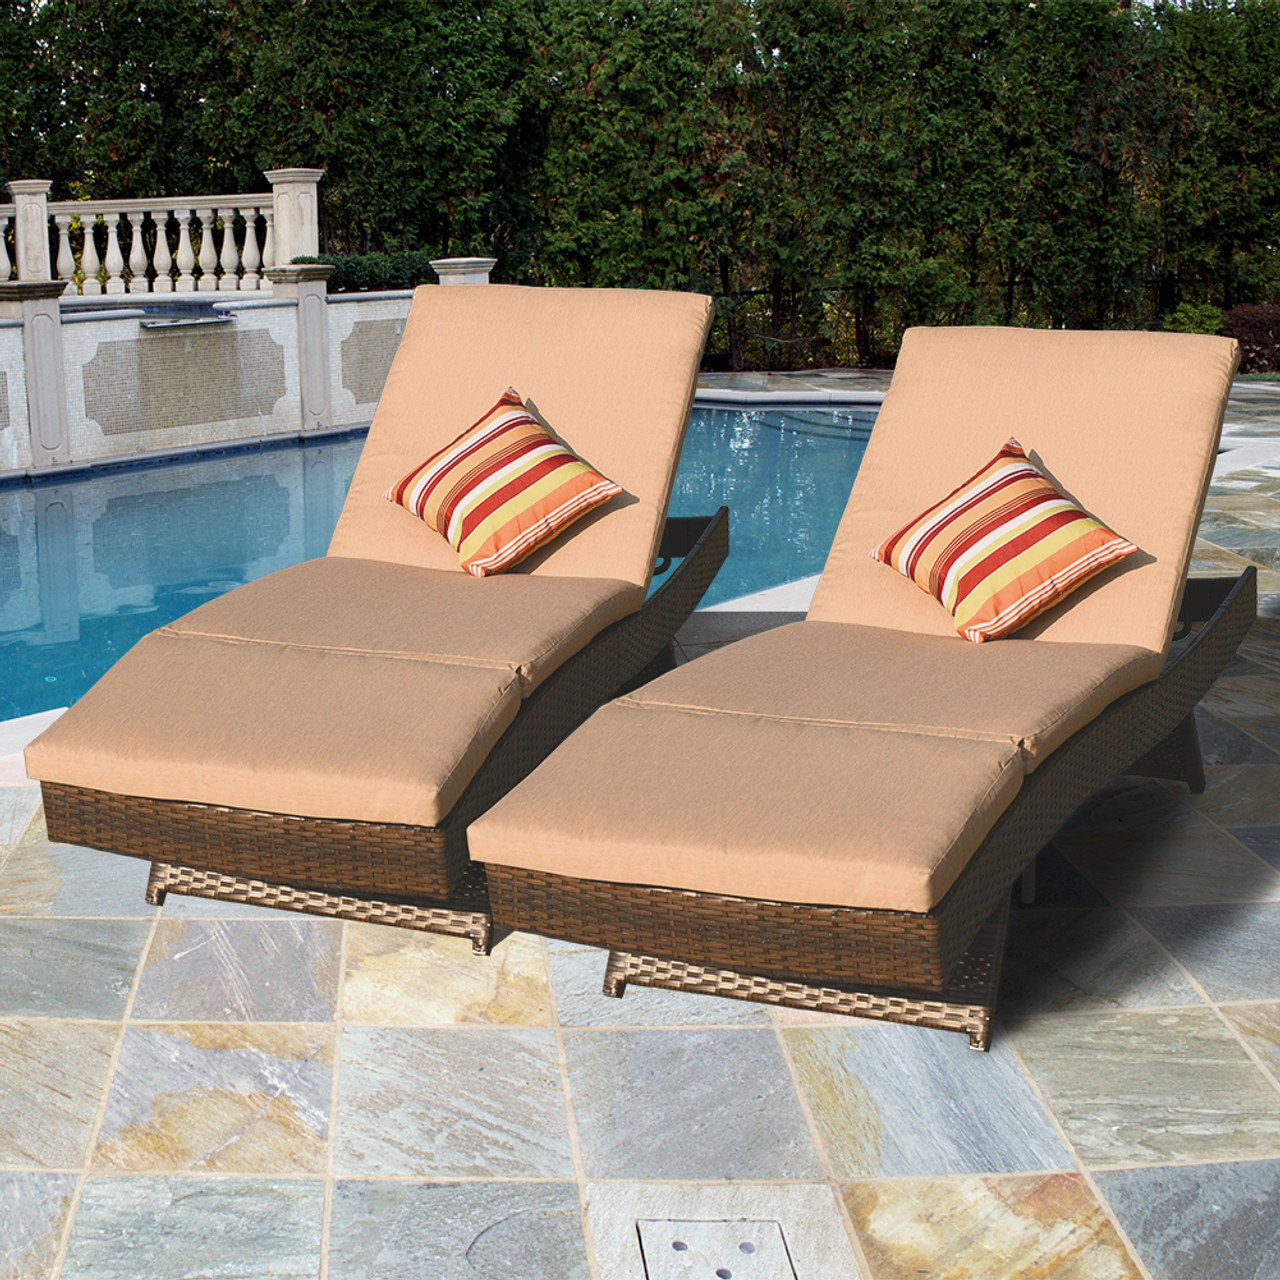 Lounge Throw Sundale Outdoor 2pcs Deluxe Patio Adjustable Wicker Chaise Lounge Set With Cushions And 2 Throw Pillows Tan